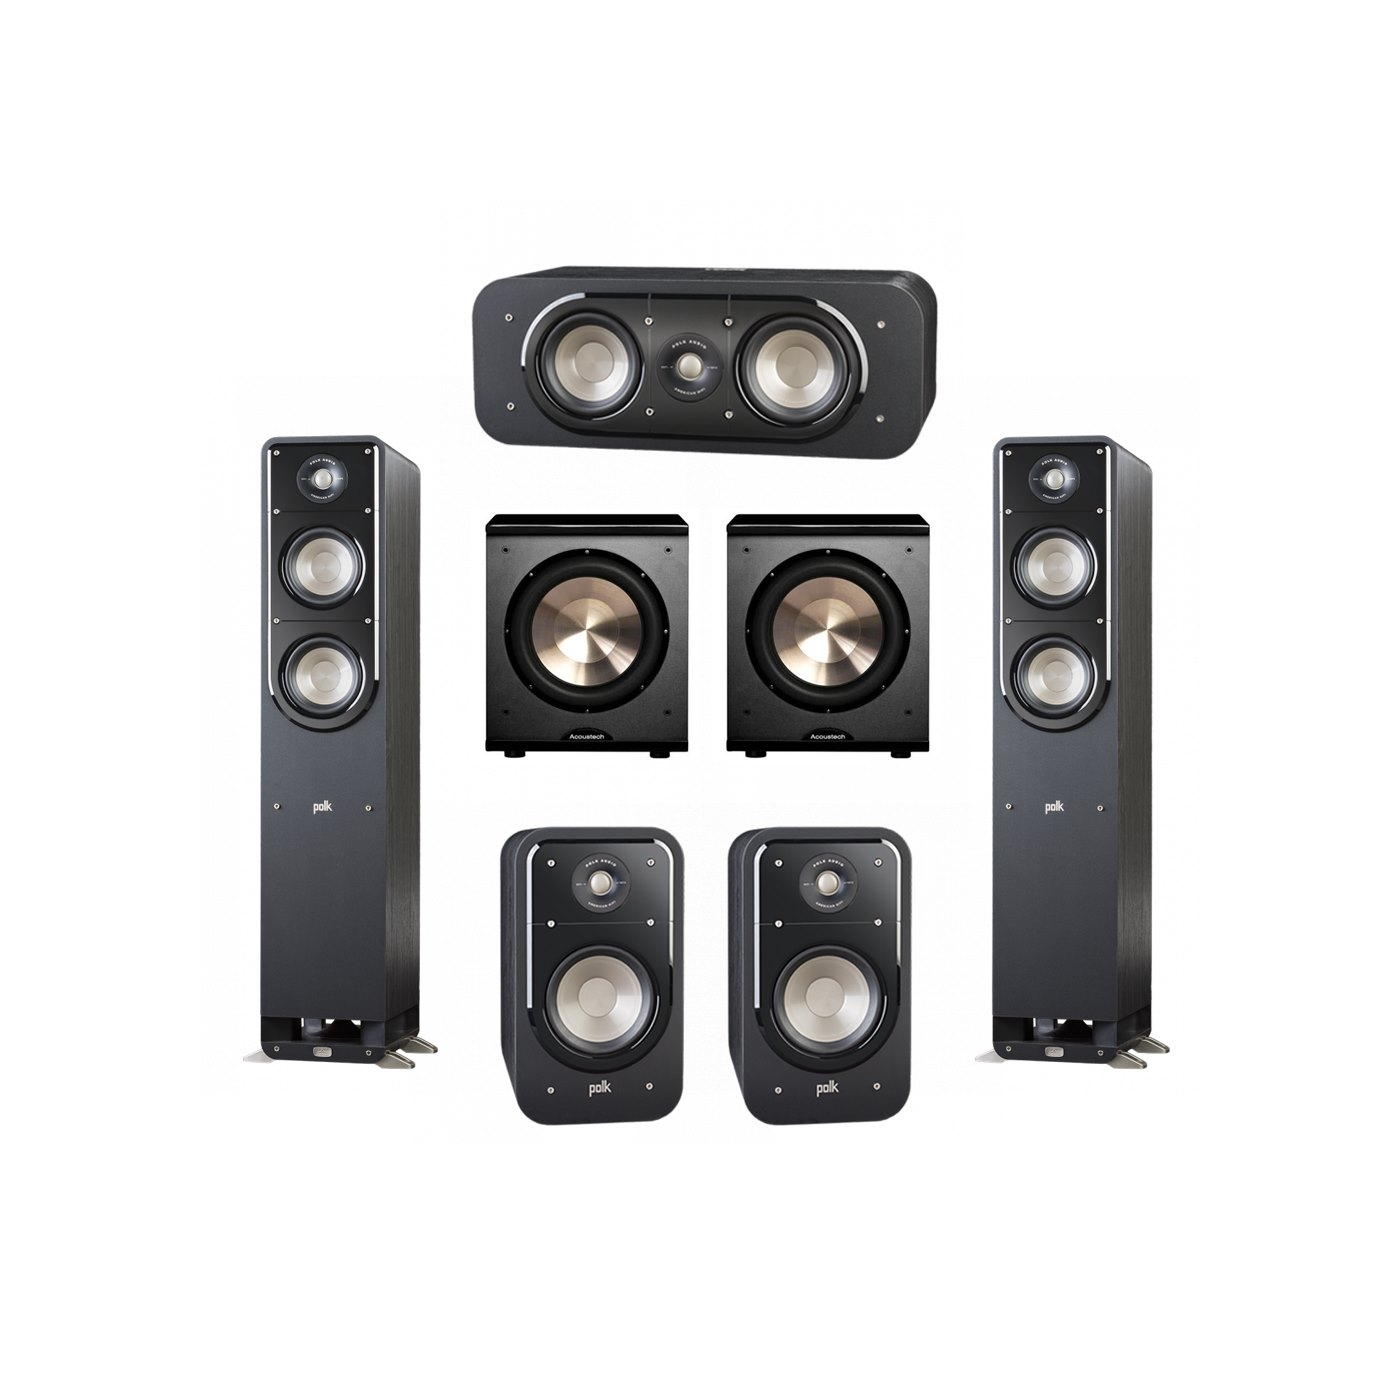 Polk Audio Signature 5.2 System with 2 S50 Tower Speaker, 1 Polk S30 Center Speaker, 2 Polk S20 Bookshelf Speaker, 2 BIC/Acoustech Platinum Series PL-200 Subwoofer